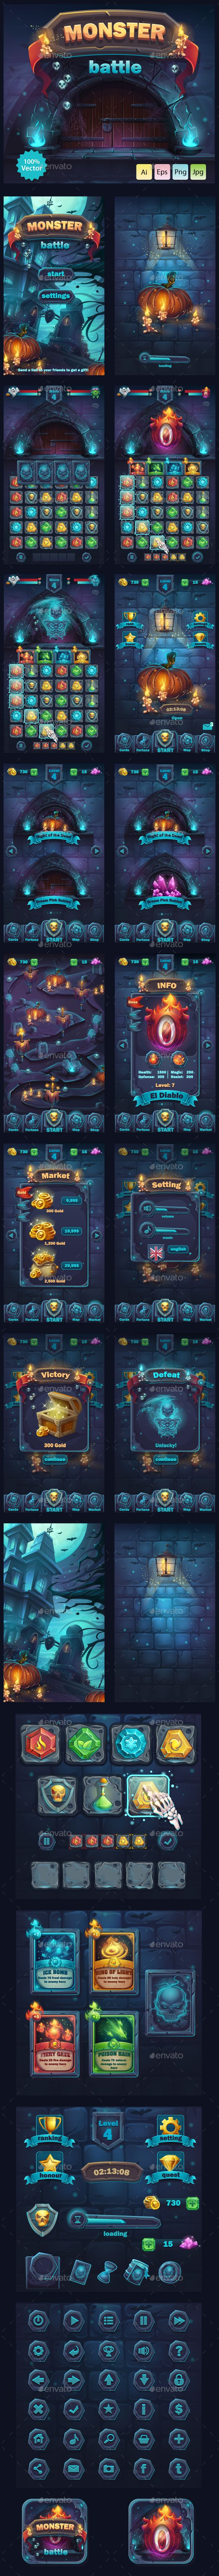 Monster Battle GUI Download link: https://graphicriver.net/item/monster-battle-gui/19841074?ref=klitz